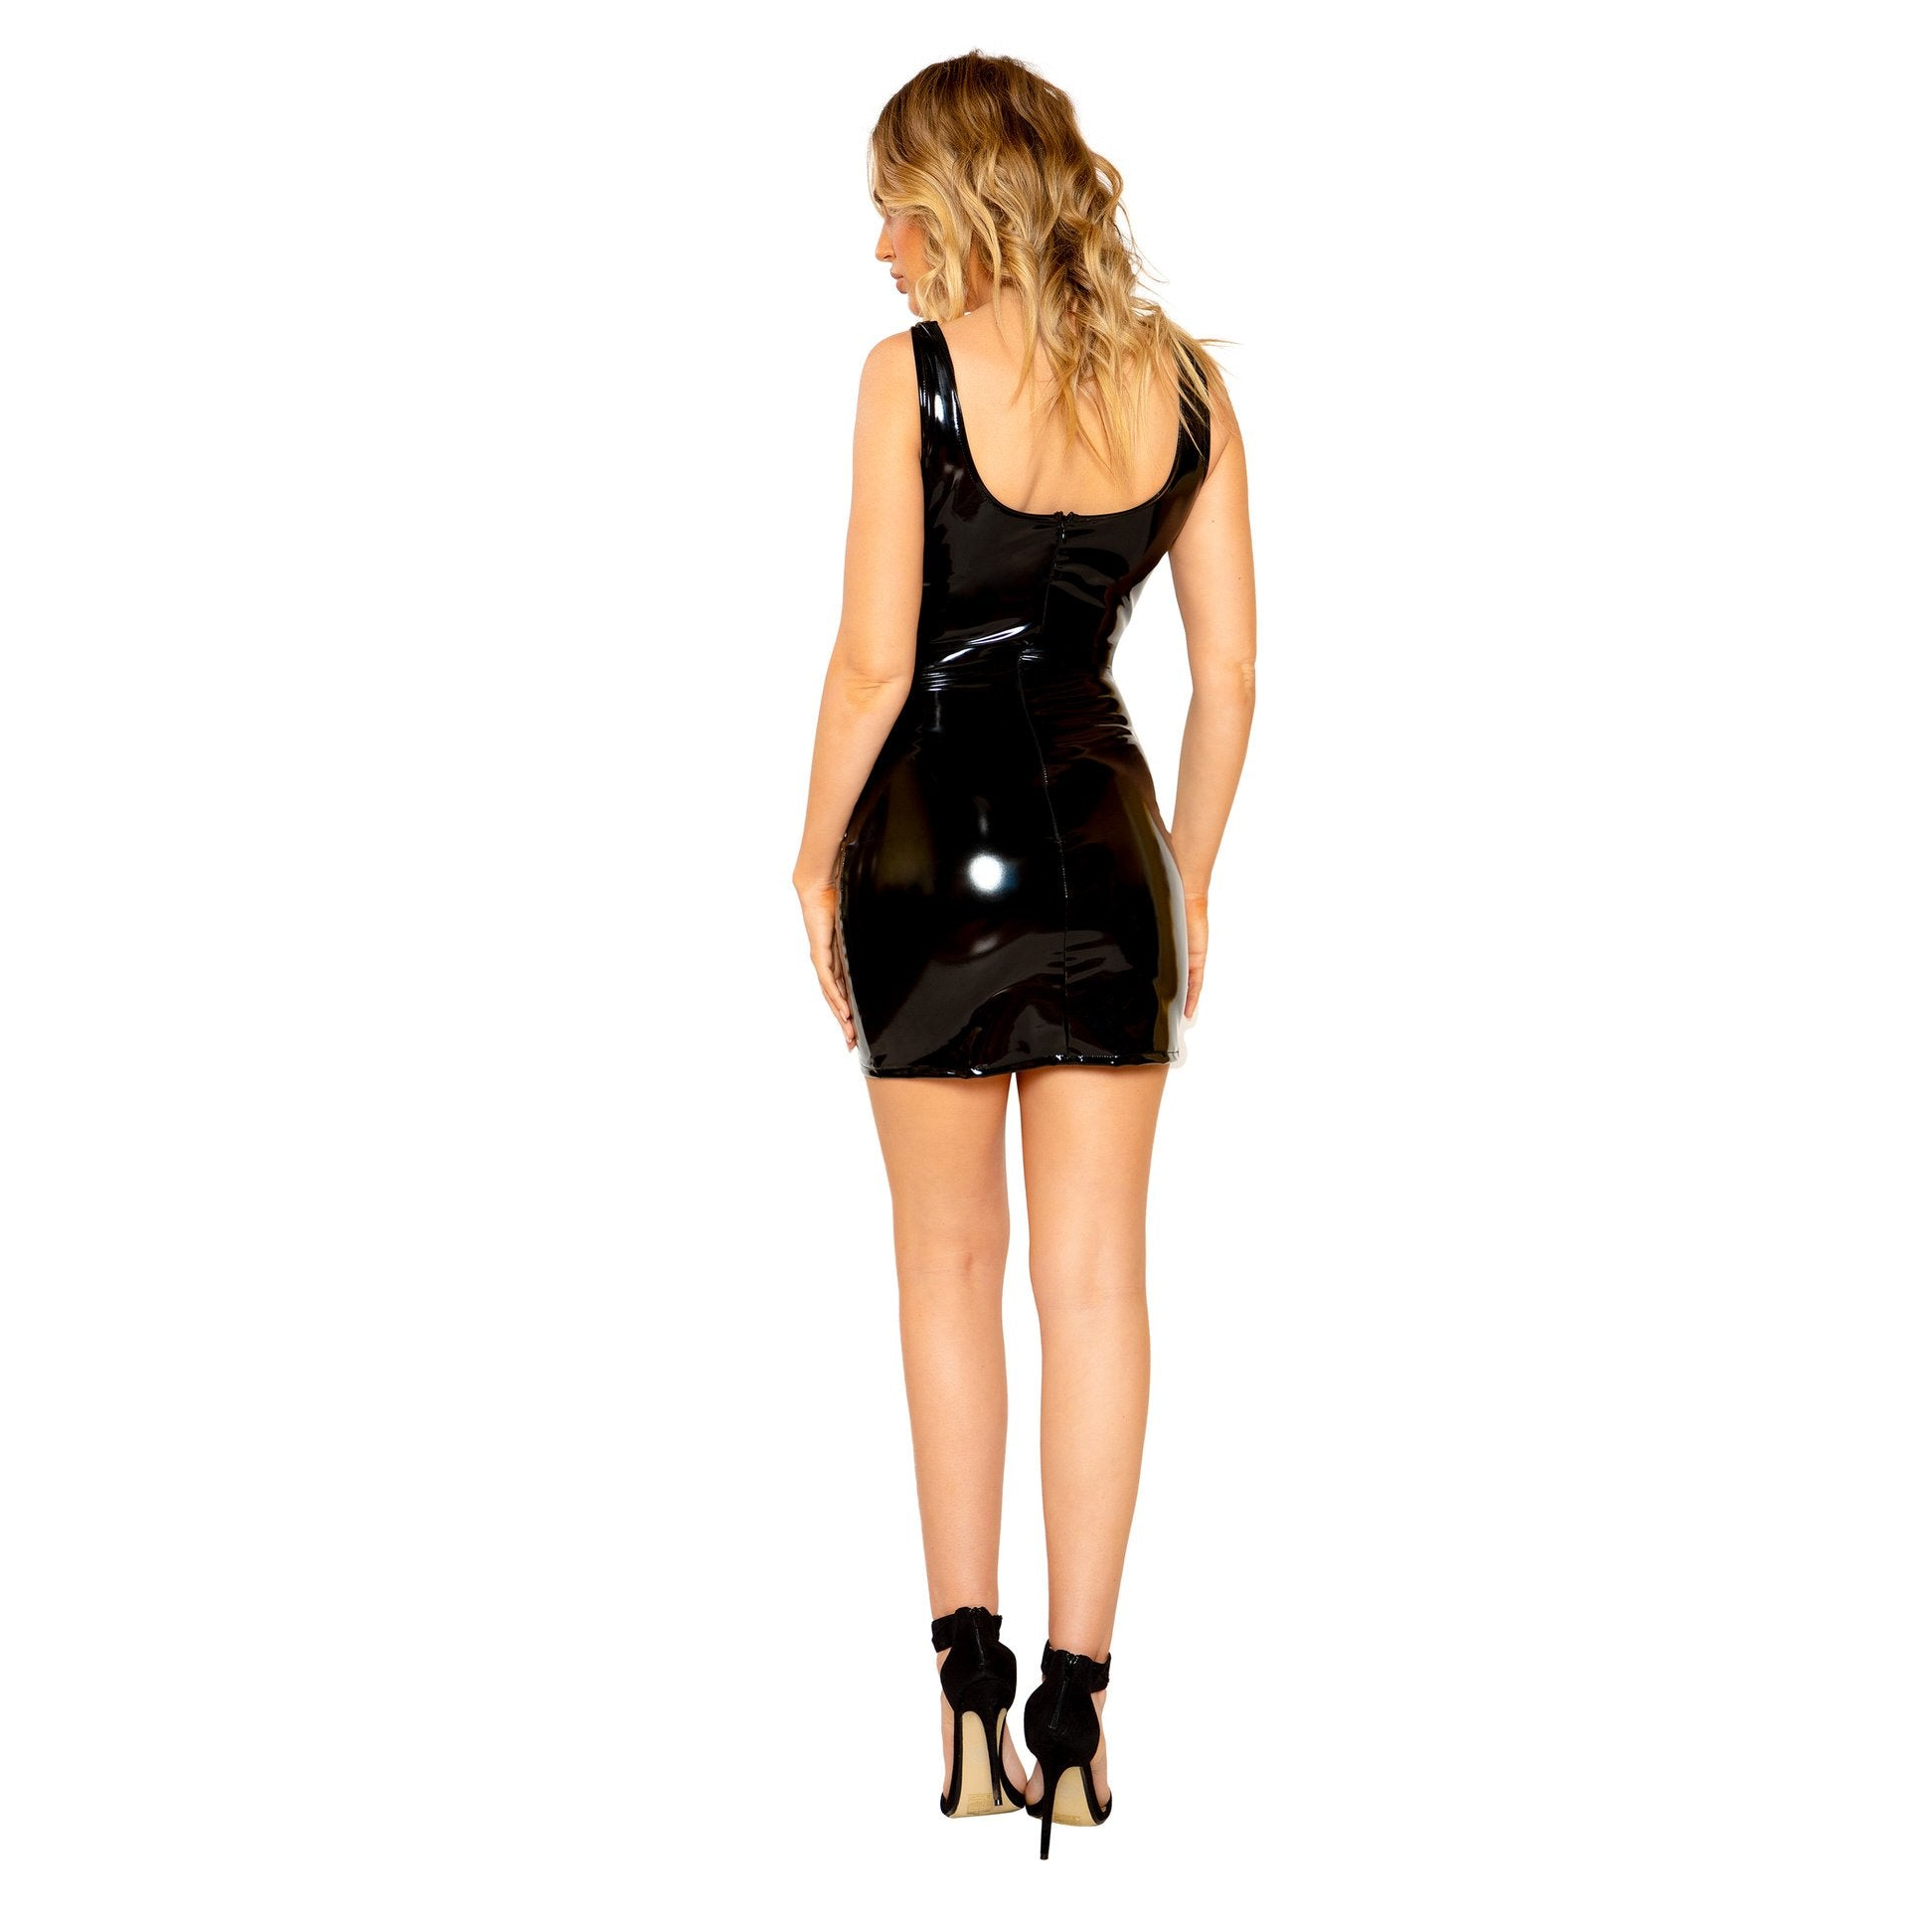 3792 - Stretch Vinyl Mini Dress with Zipper Closure